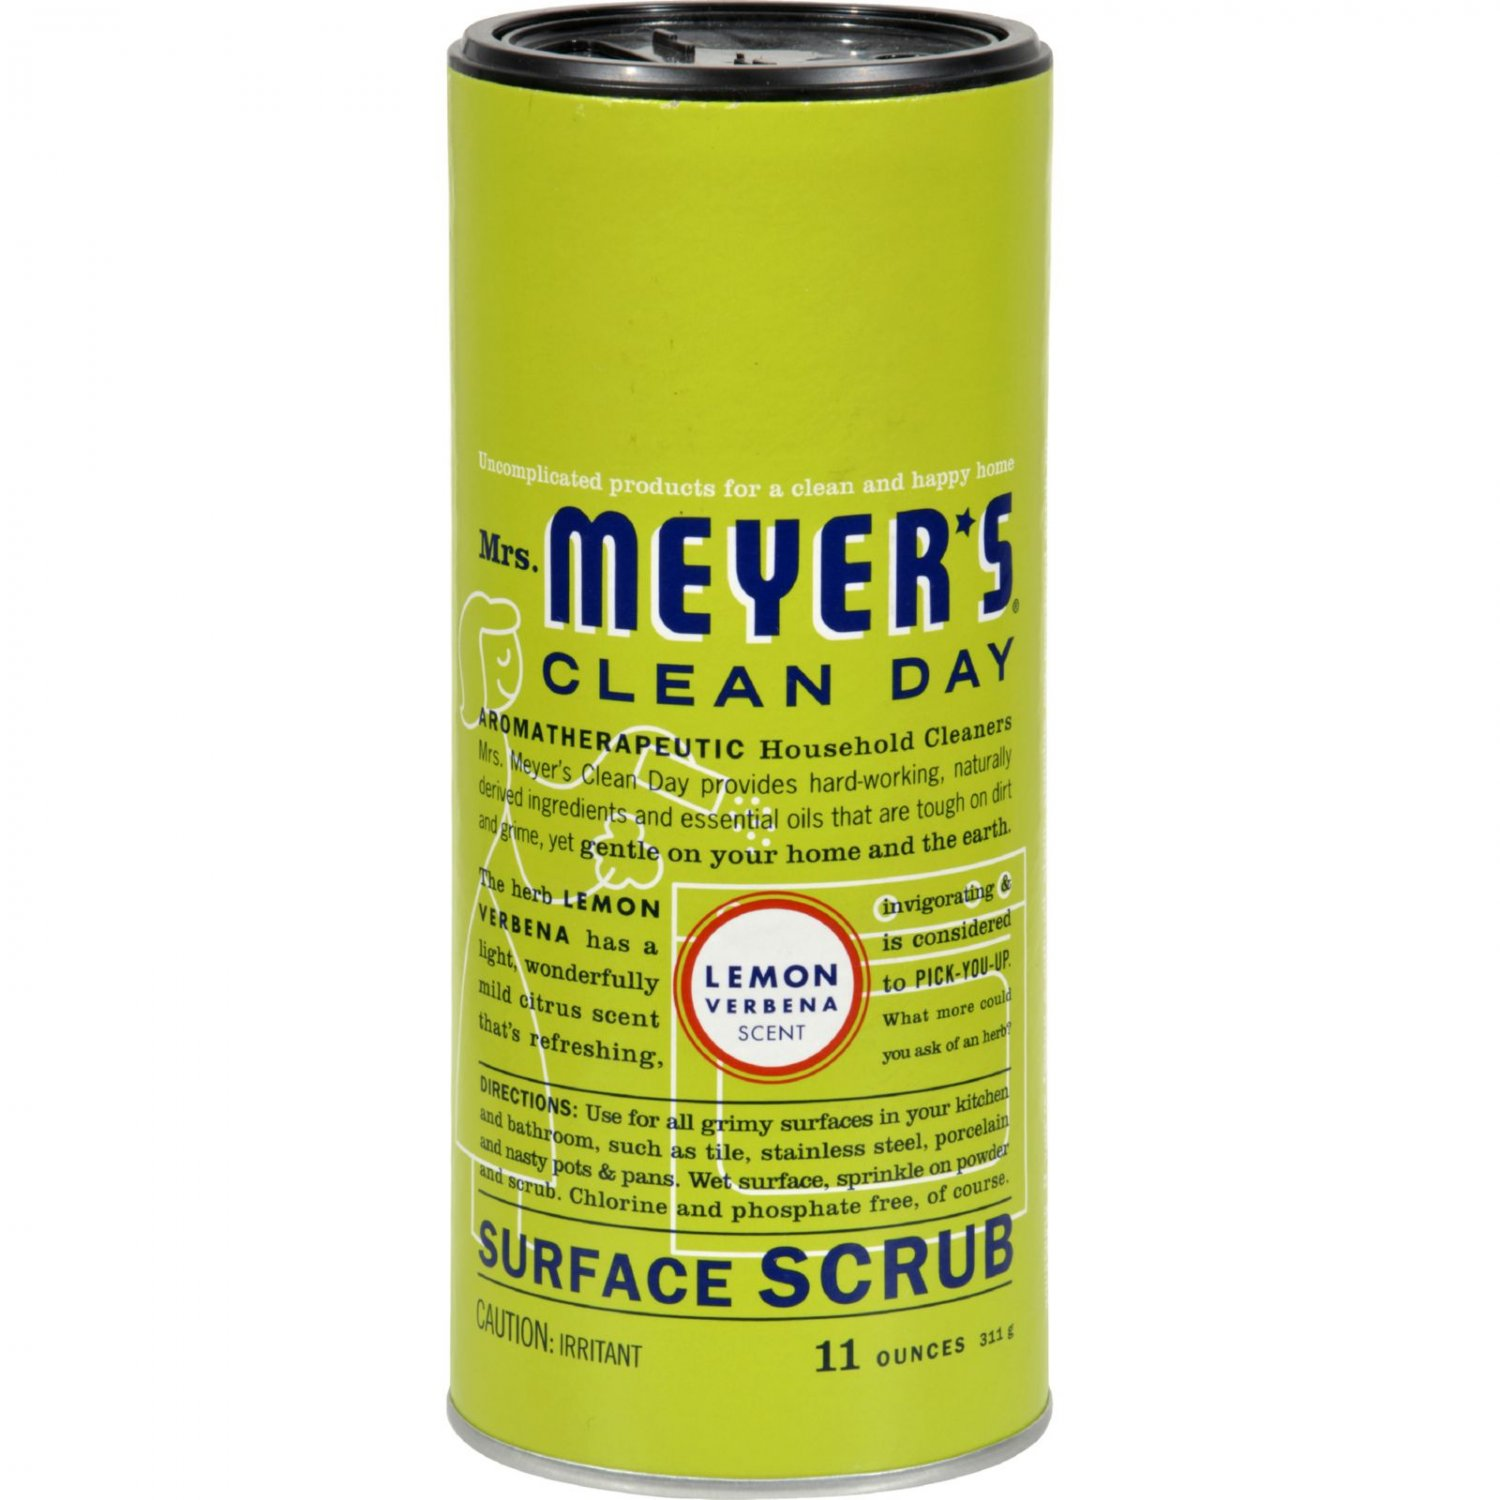 Mrs. Meyer's Surface Scrub - Lemon Verbena - 11 oz